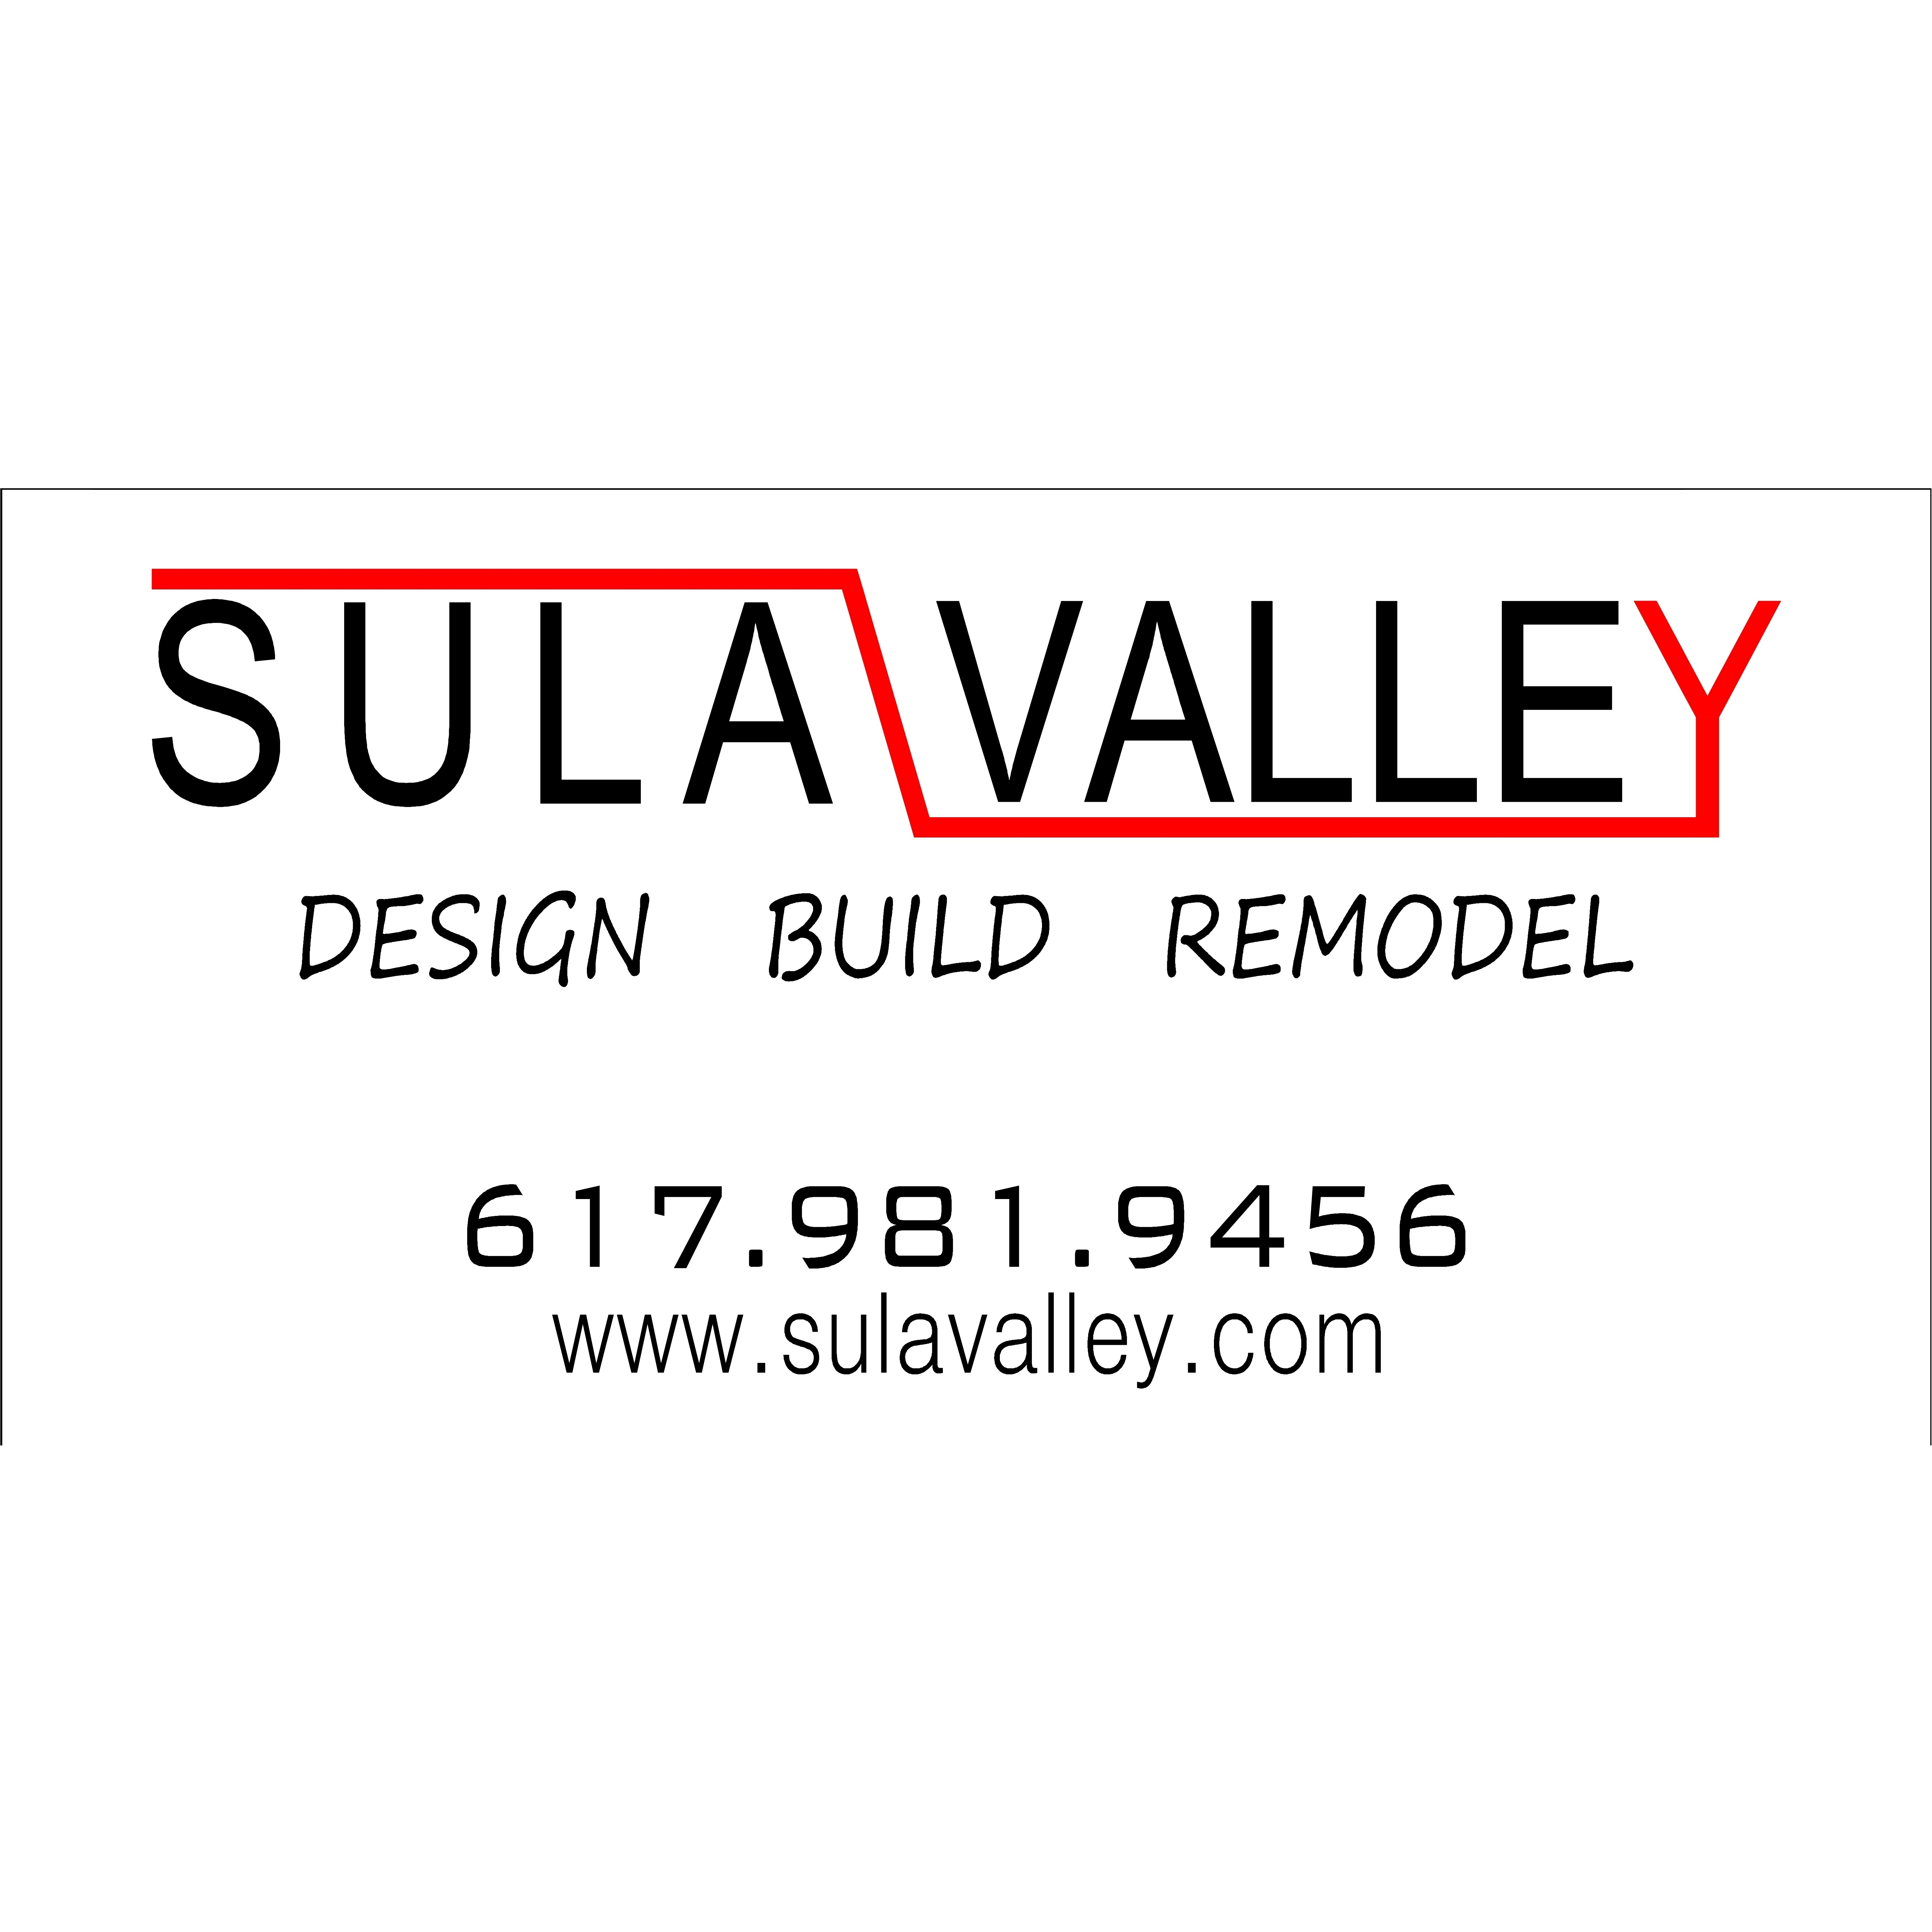 SULAVALLEY